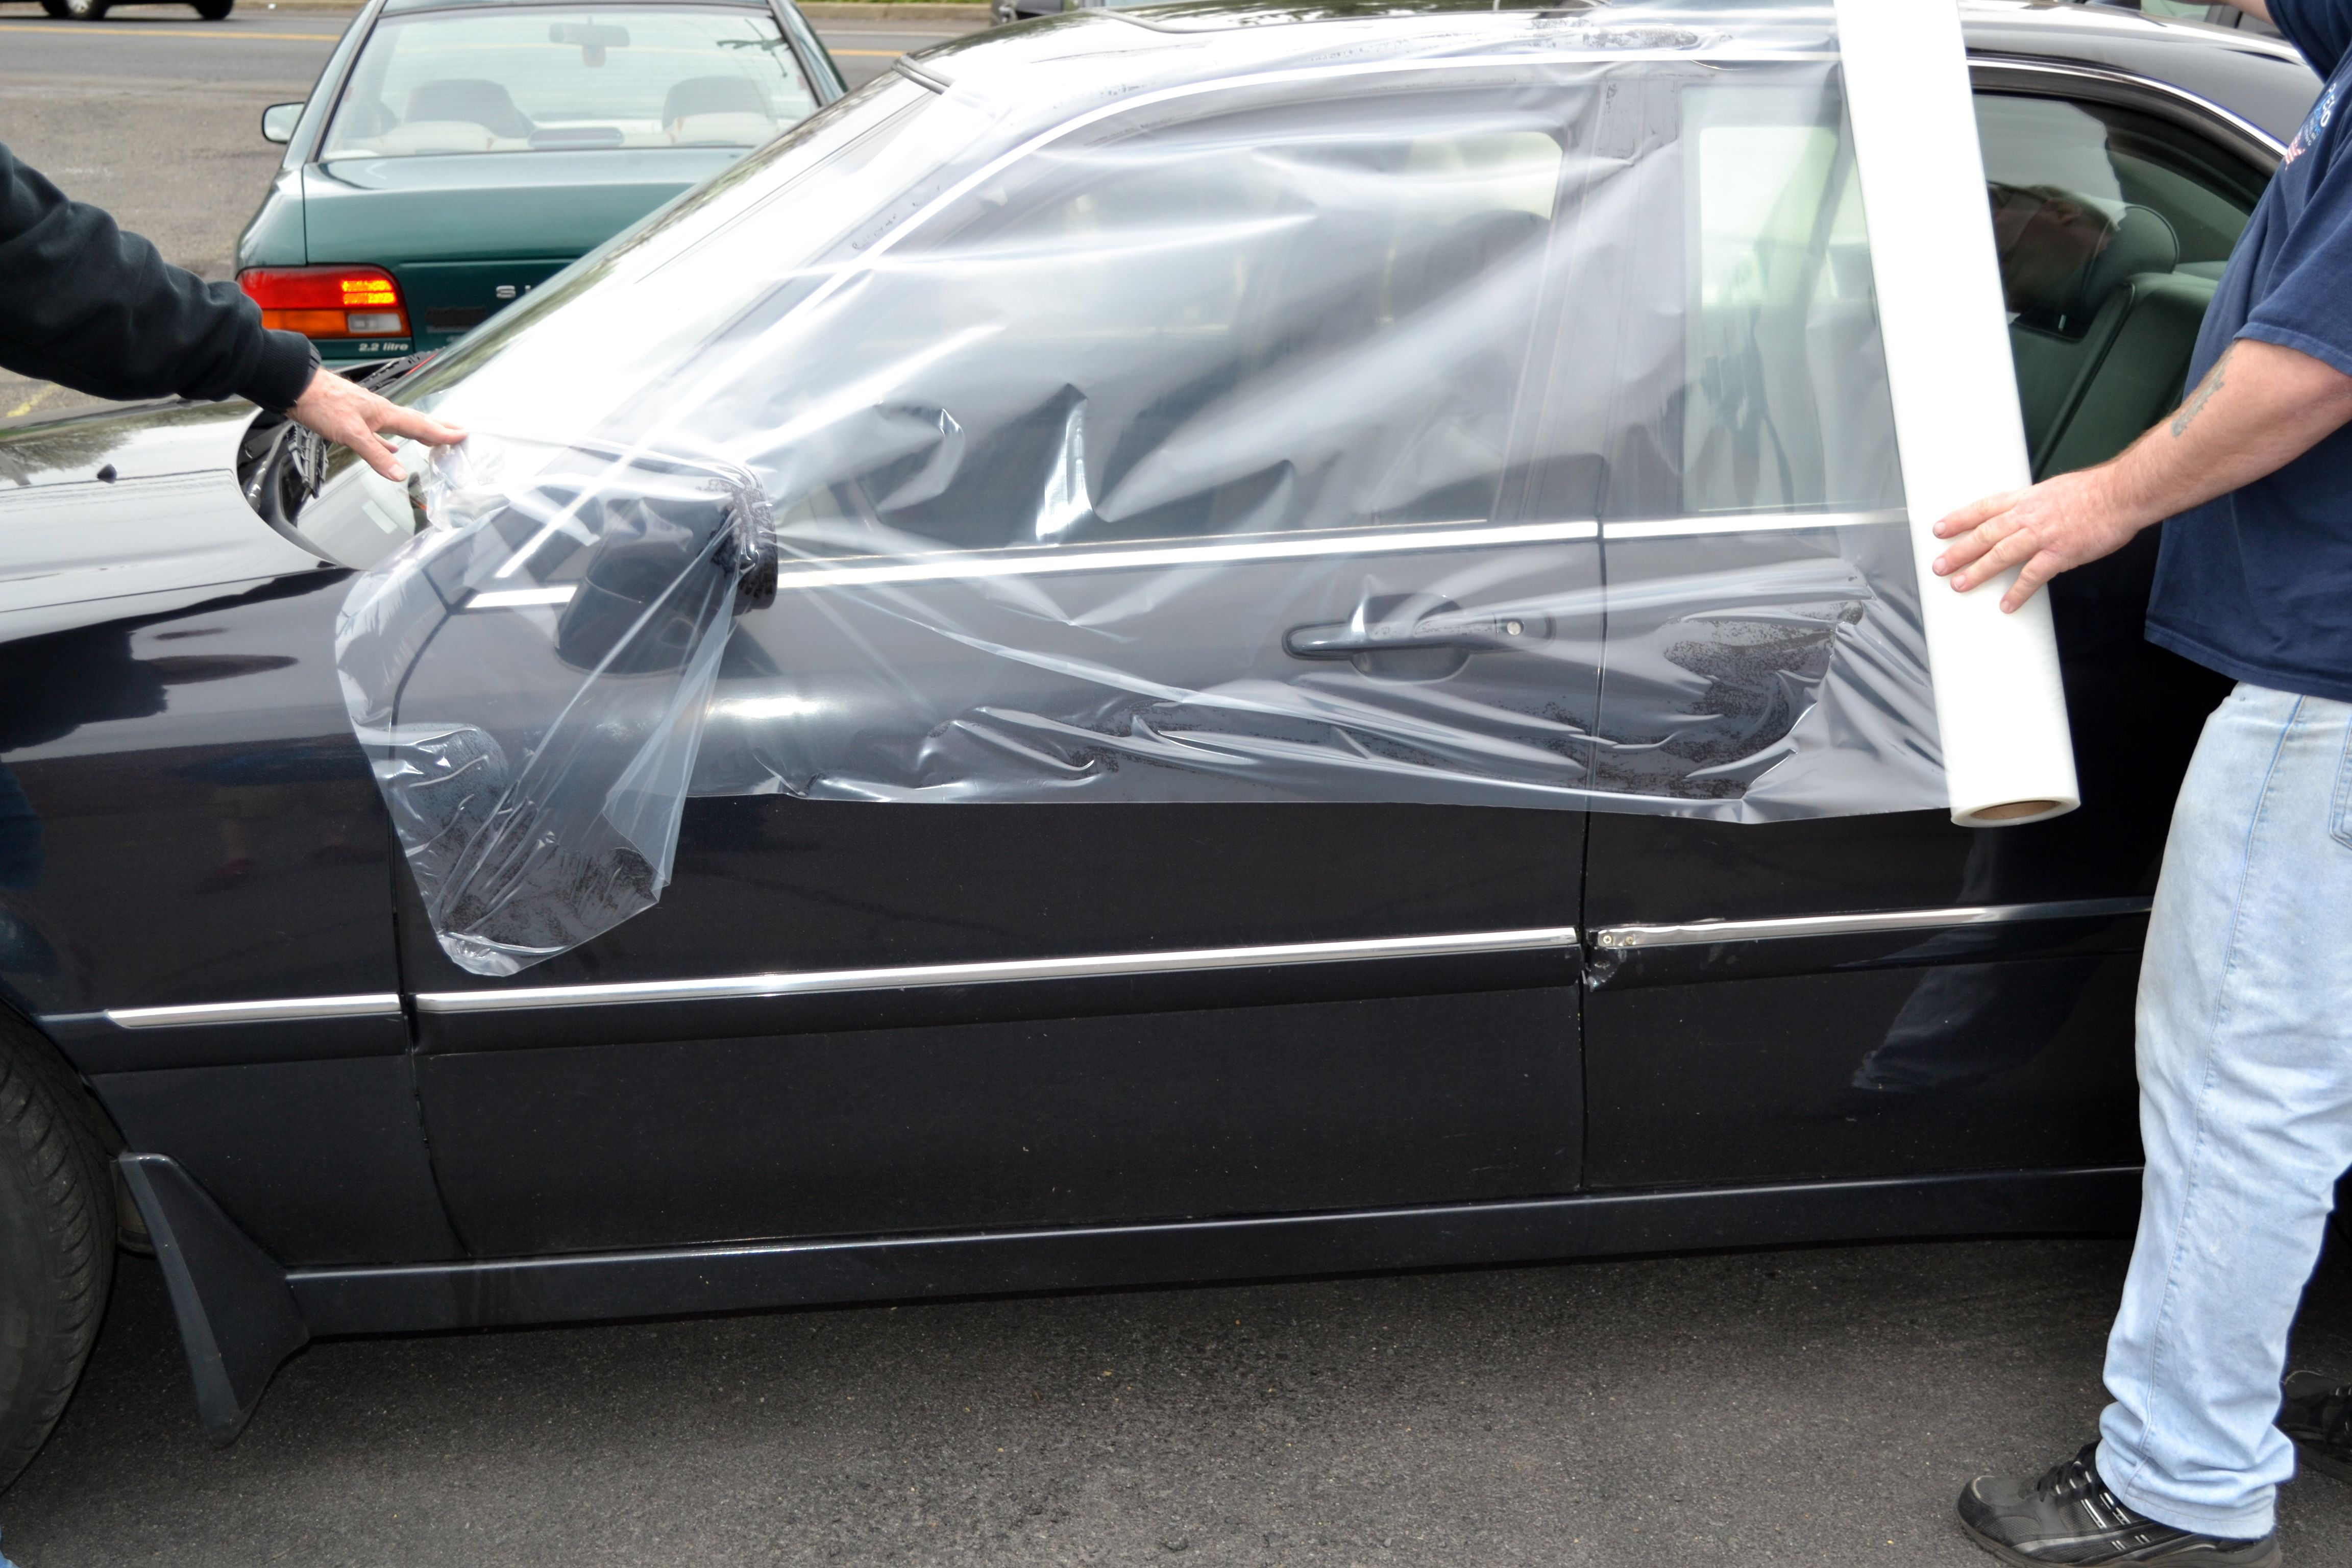 Presto Tape S Crash Protection Film Also Known Wreck Wrap Wreck A Wrap Or Salvage Is A Temporary Yet Extremely Effe Auto Collision Car Protection Auto Repair